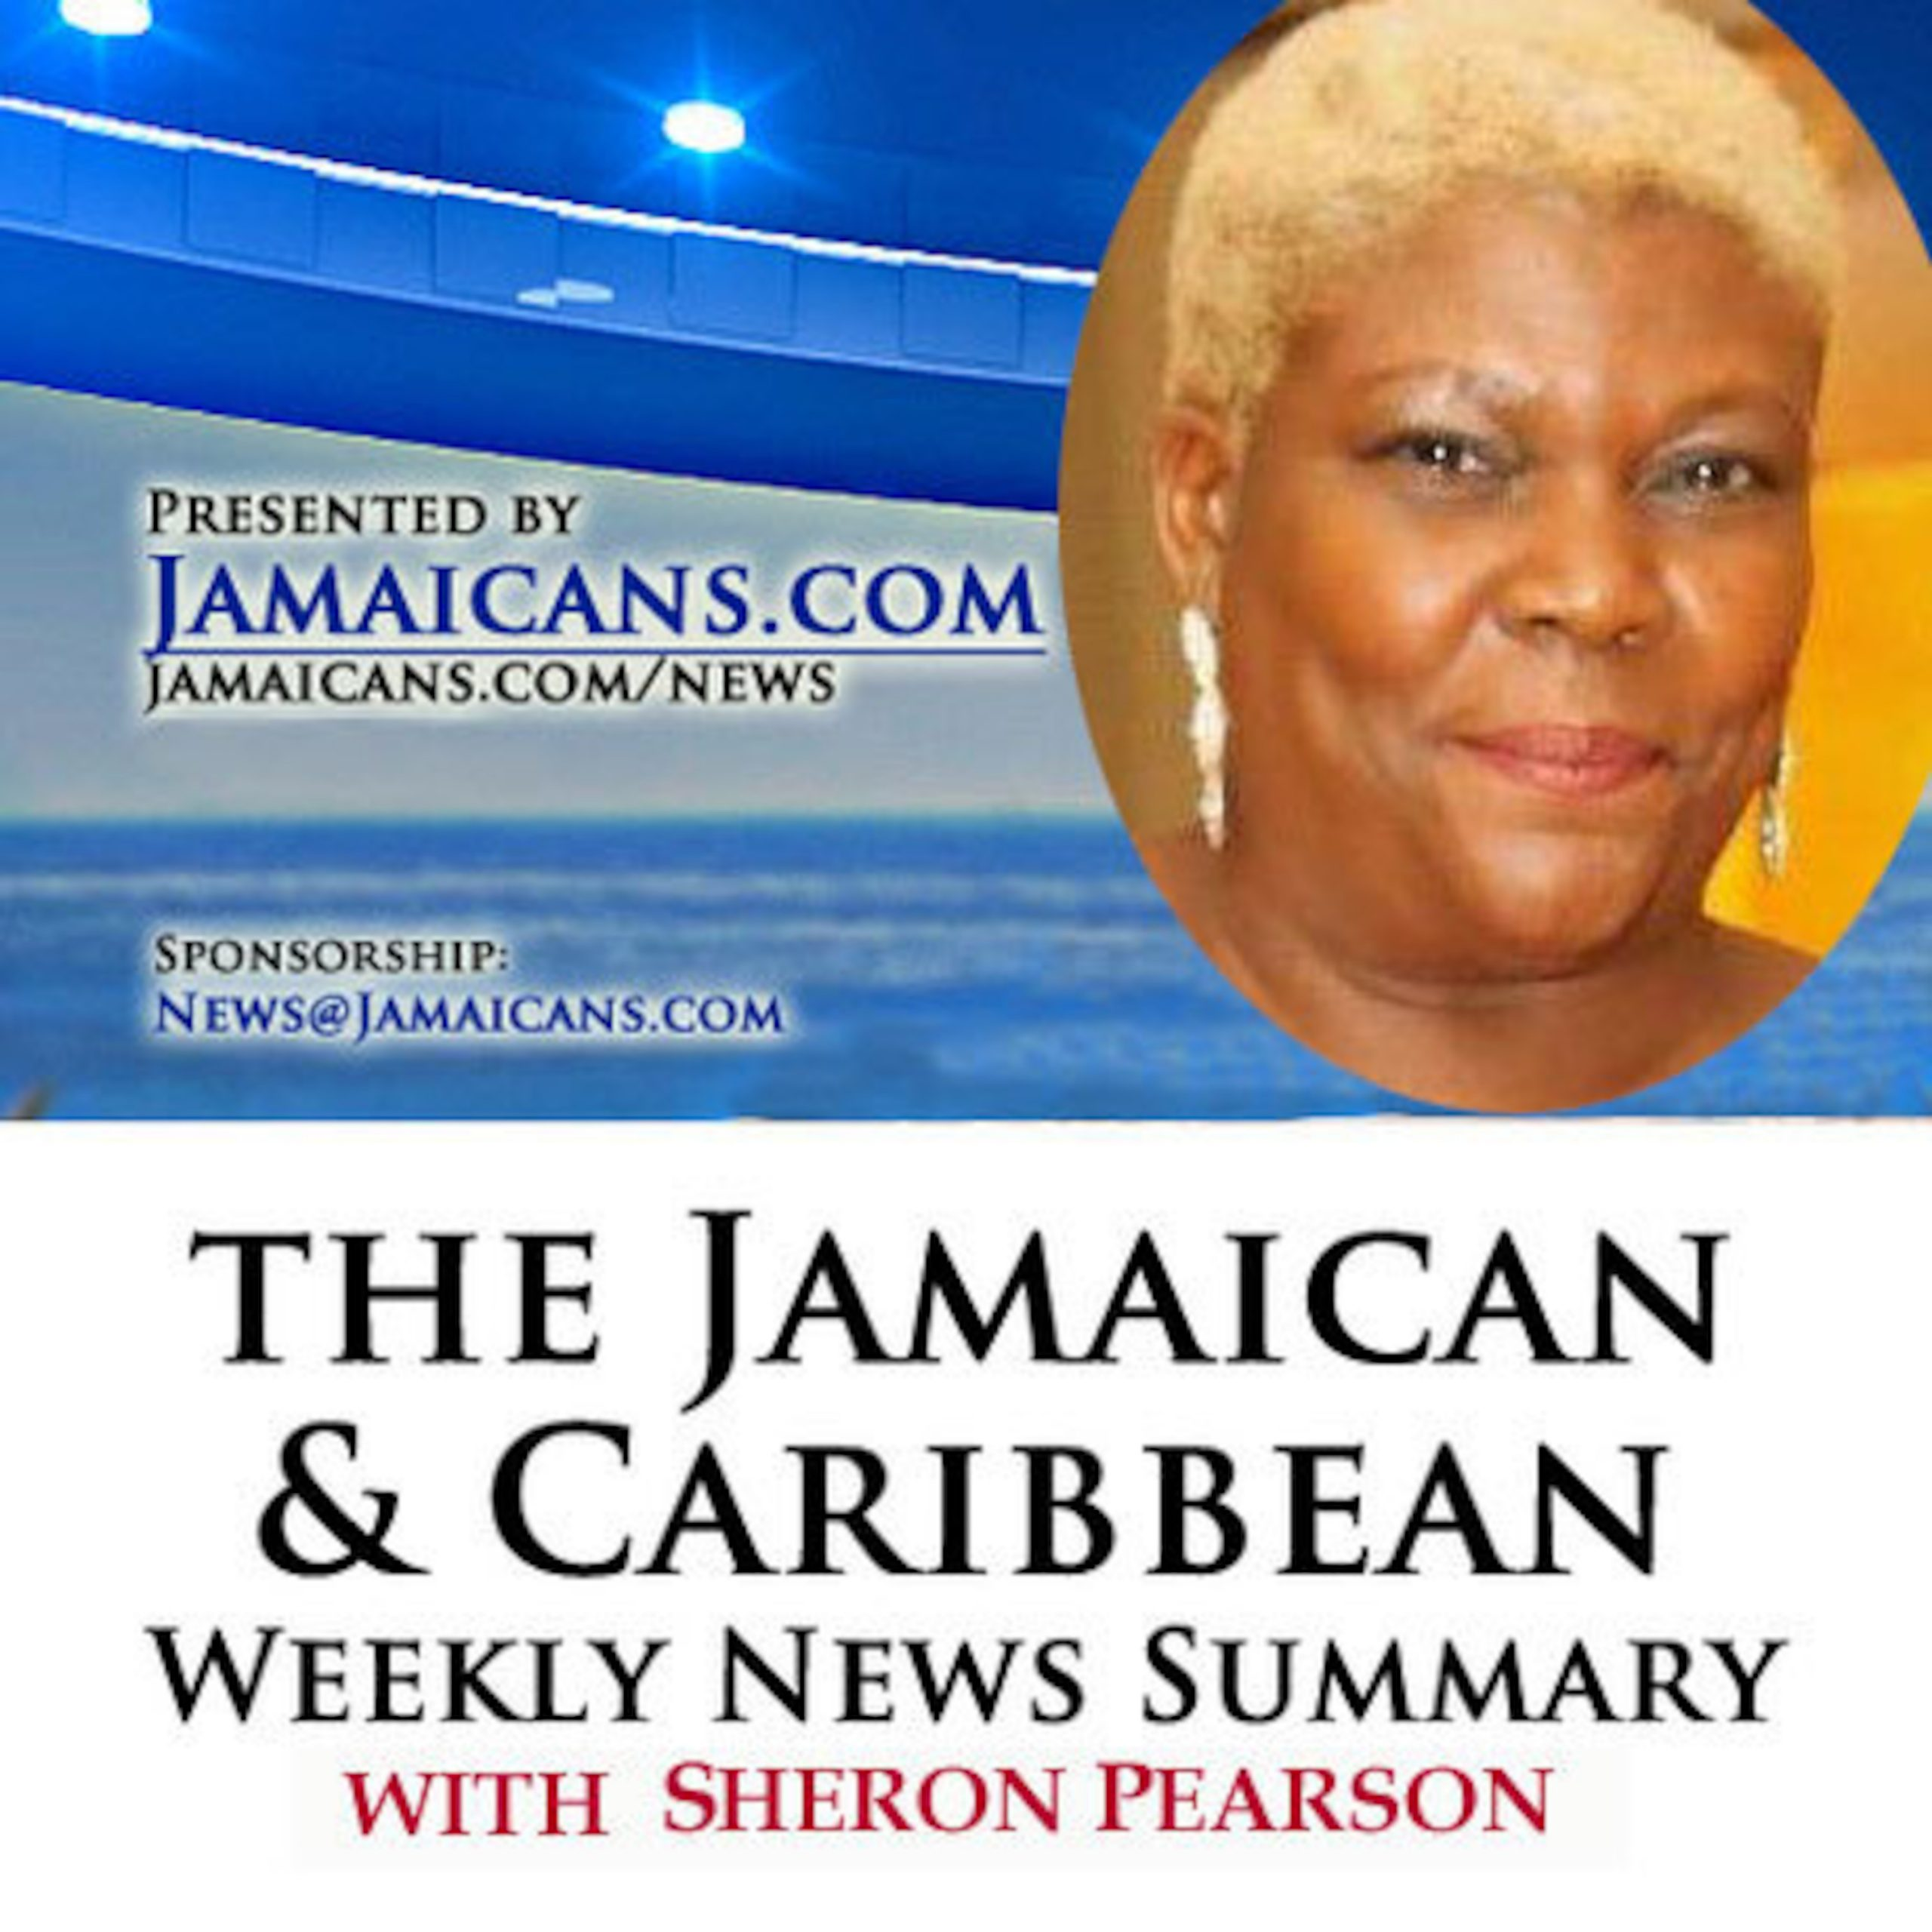 Listen to the Podcast of The Jamaica & Caribbean Weekly News Summary for the week ending June 5, 2020